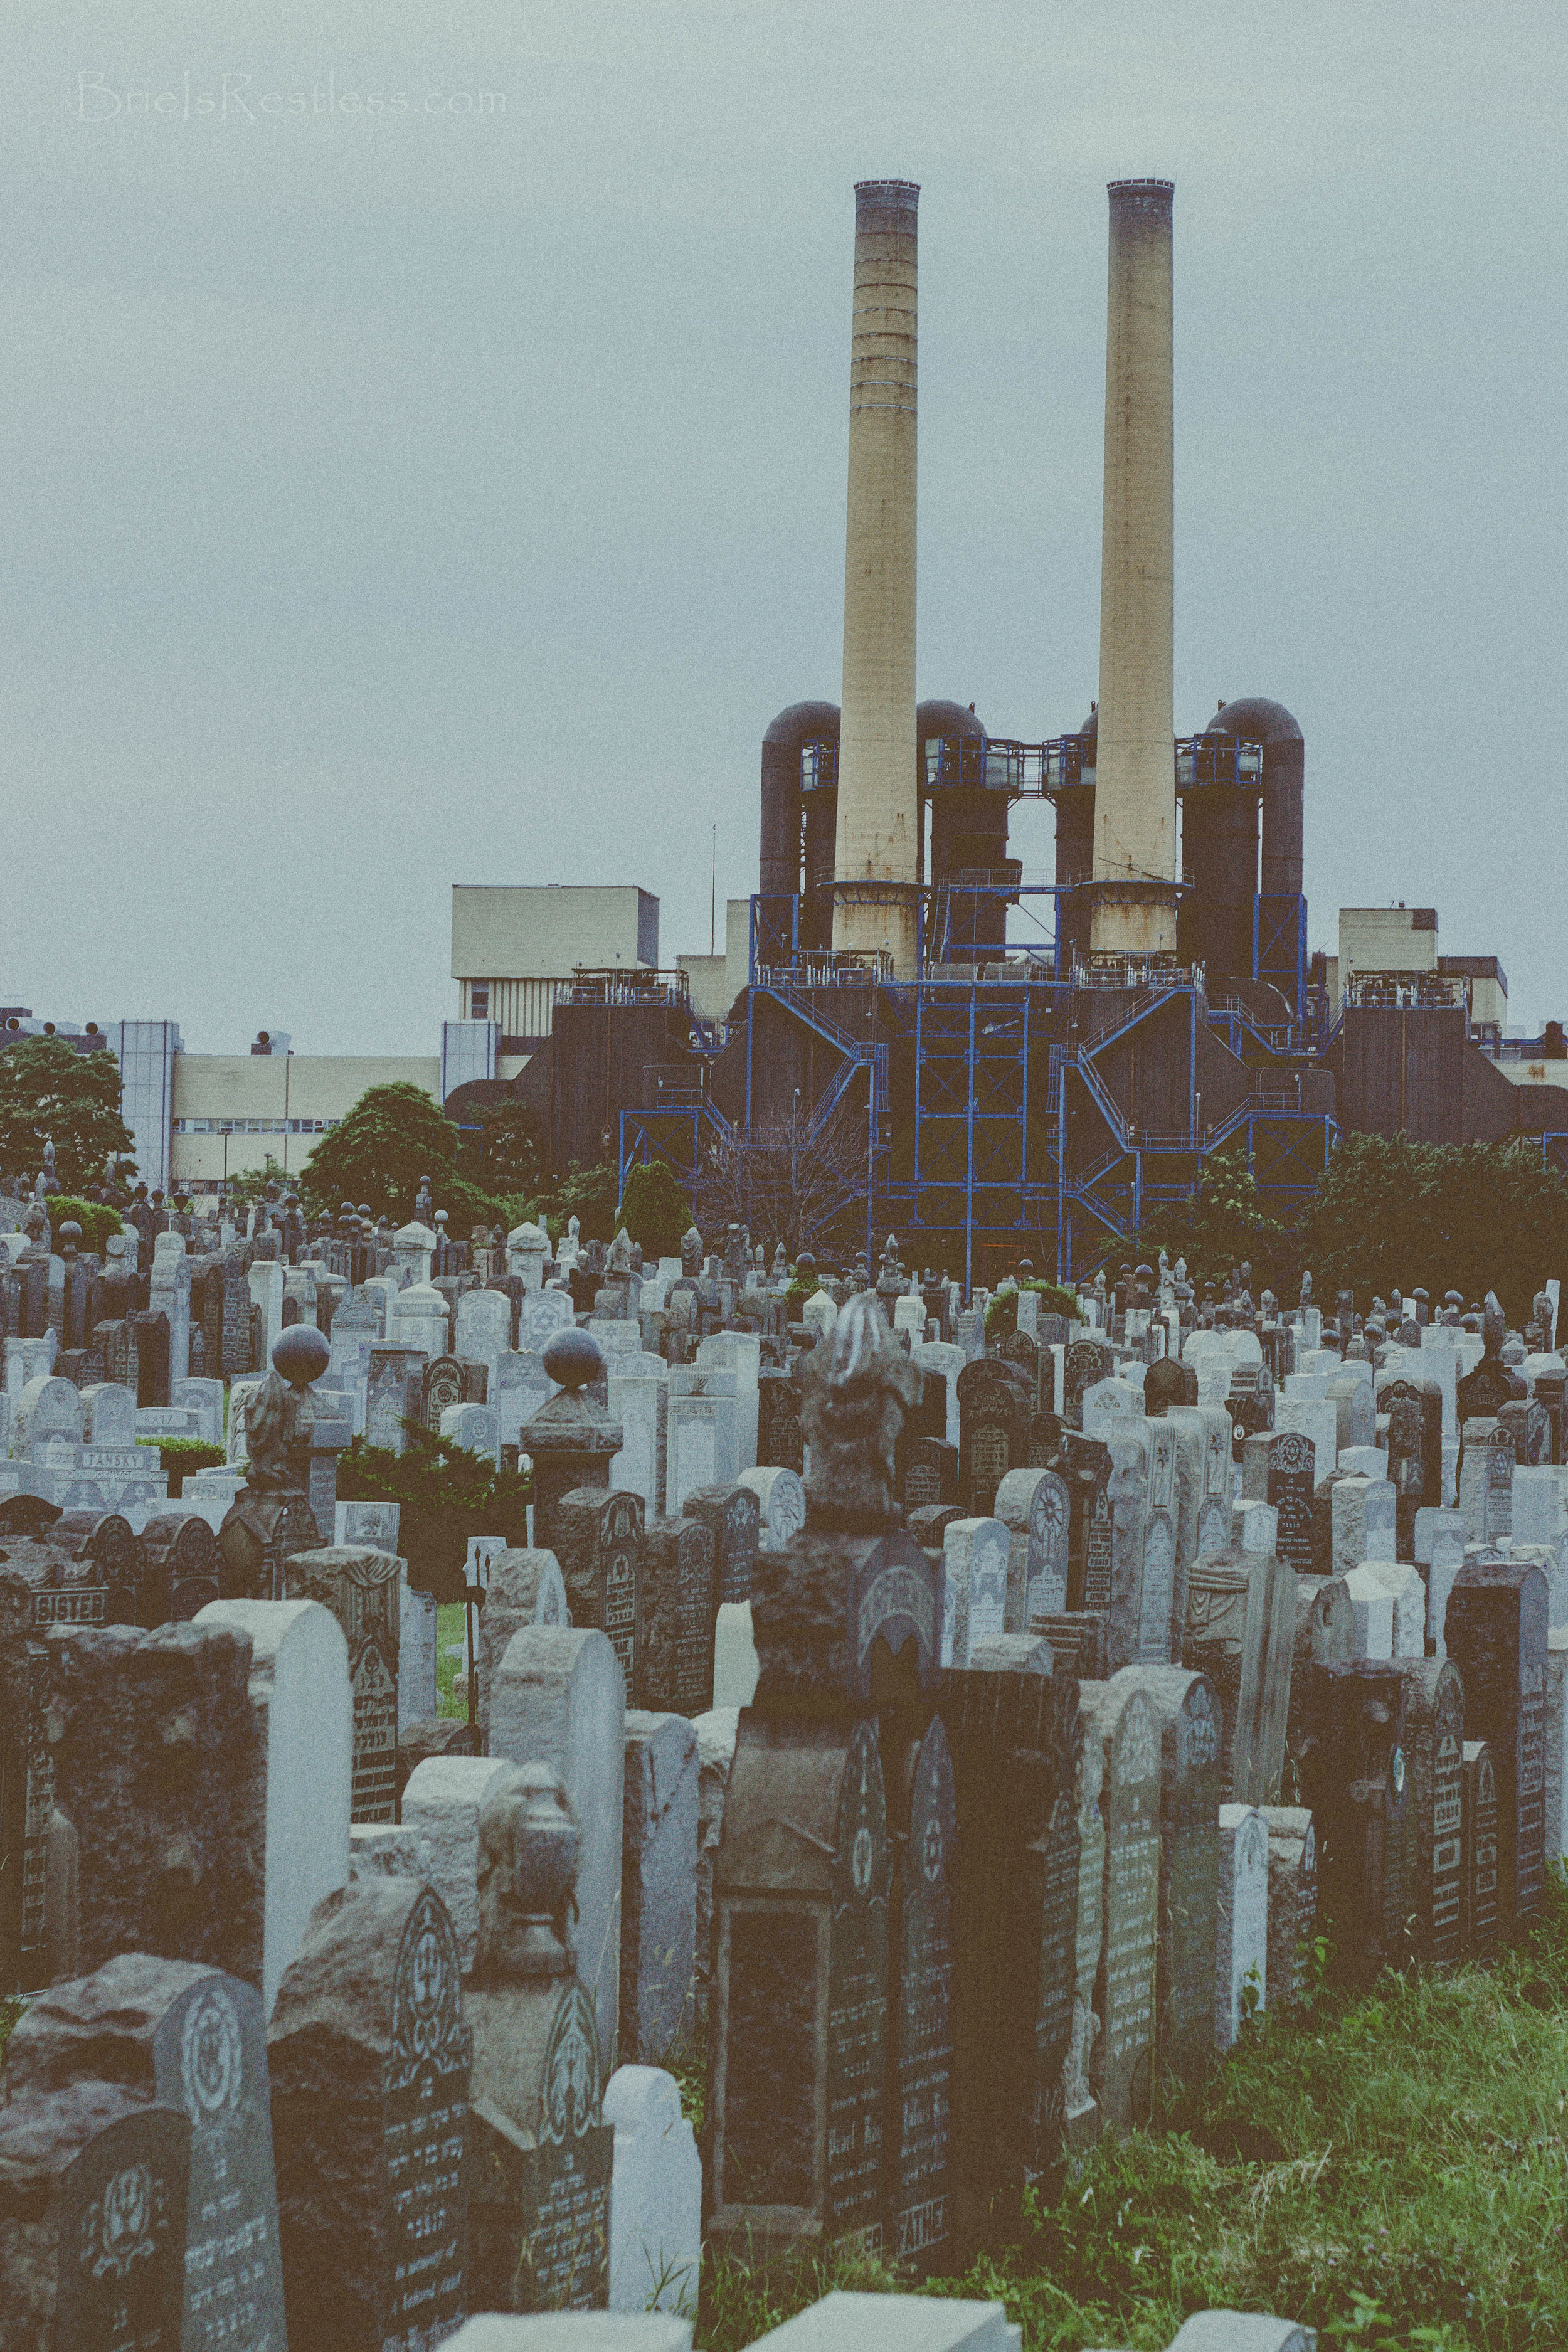 Cemetery In Queens - NYC (1 of 1)-3.jpg